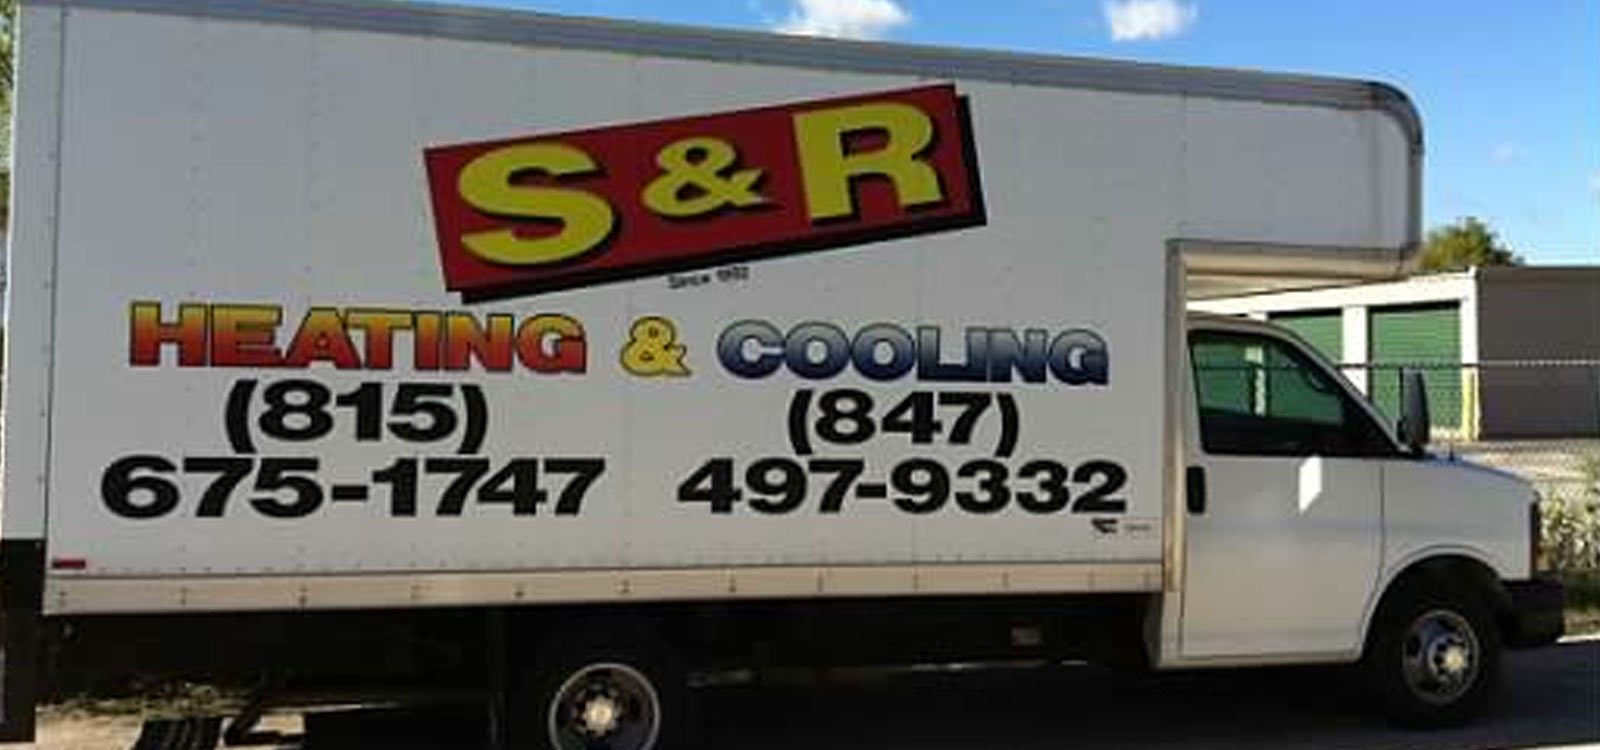 S & R Heating & Cooling truck